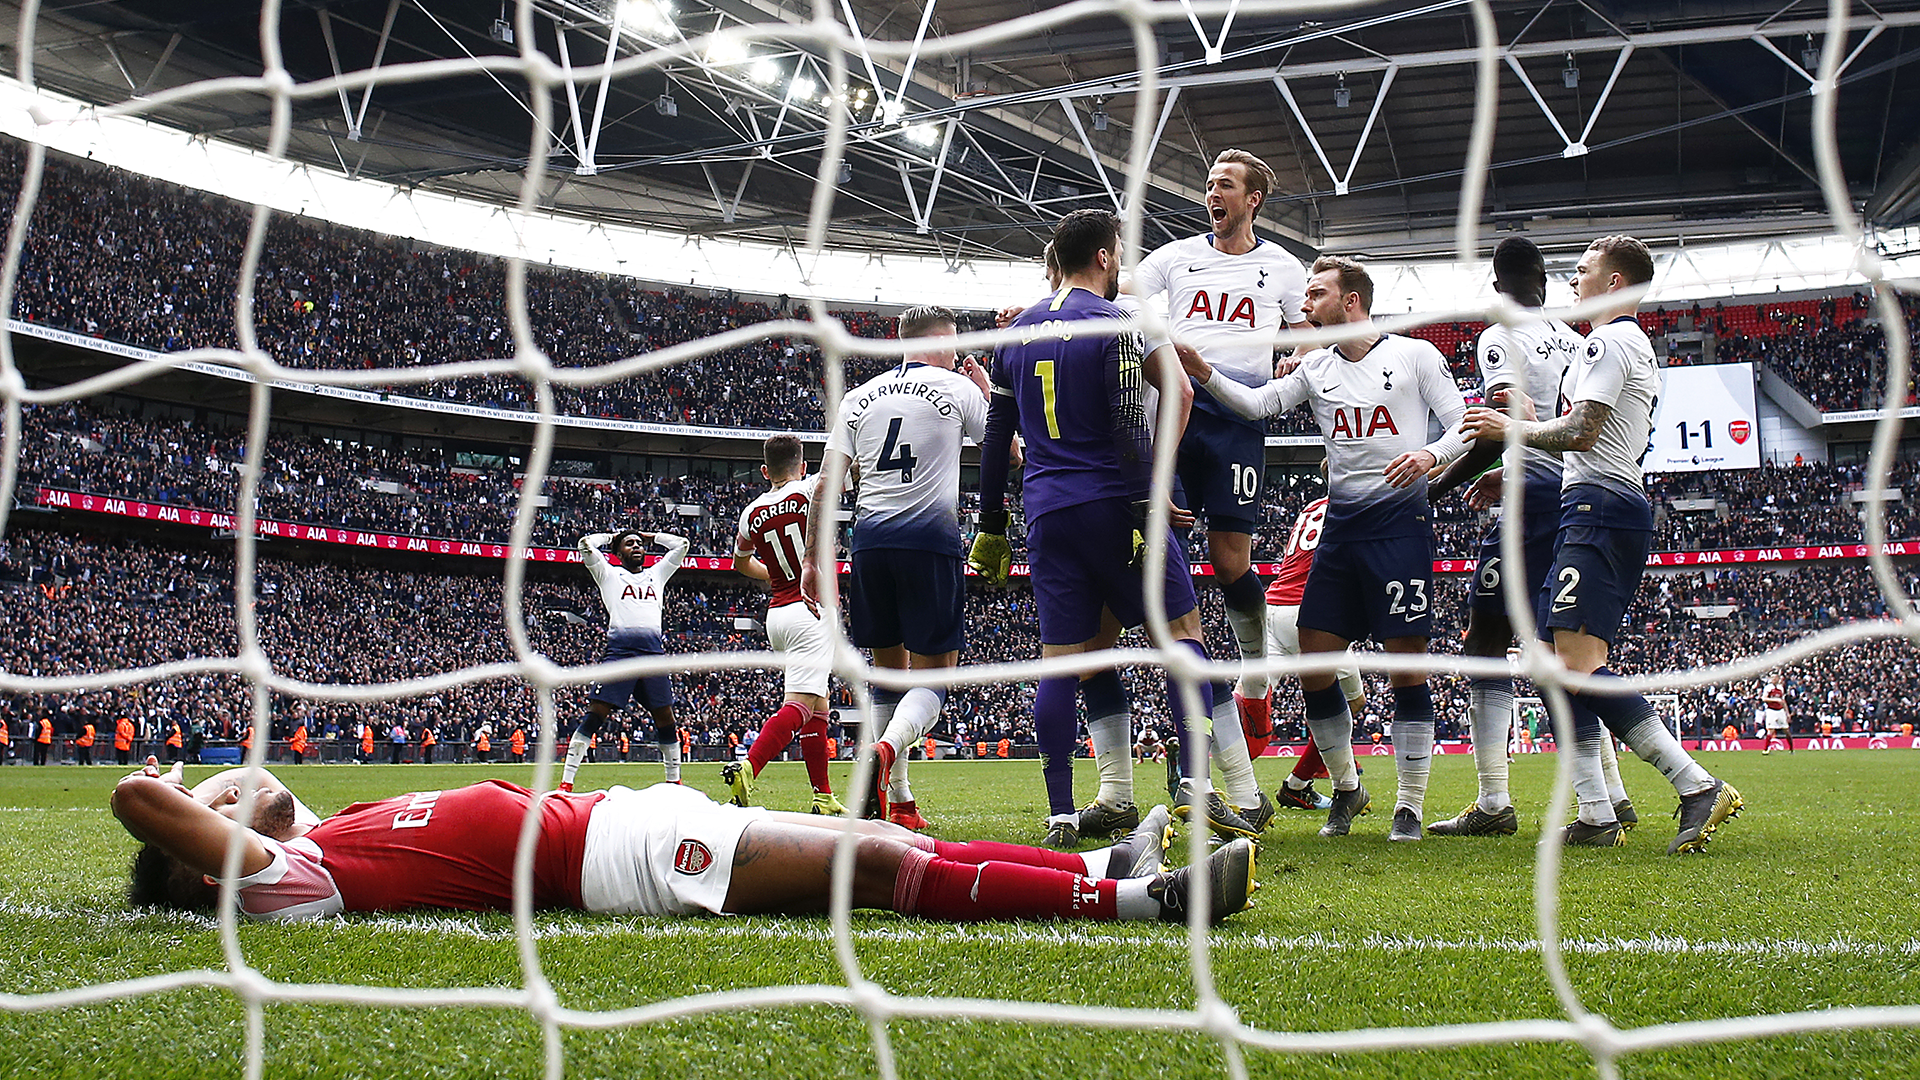 Arsenal vs Tottenham: Everything you need to know about the